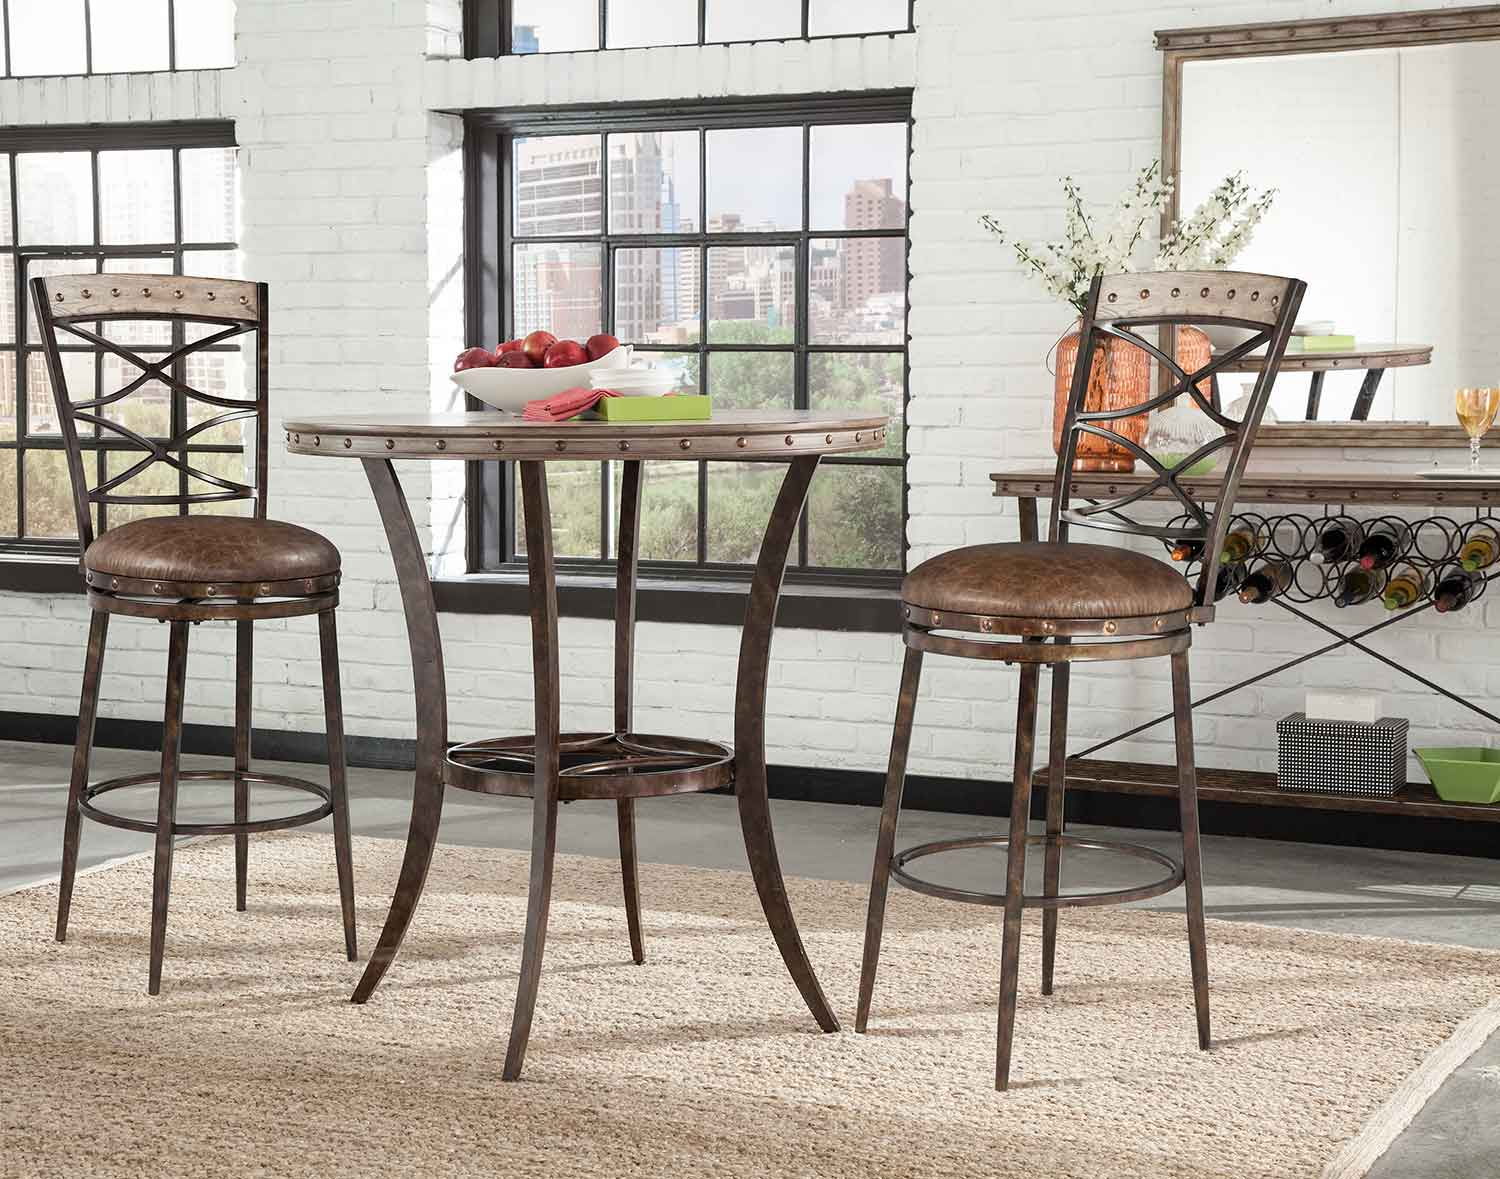 Hillsdale Emmons 3-Piece Bar Height Bistro Dining Set - Washed Gray